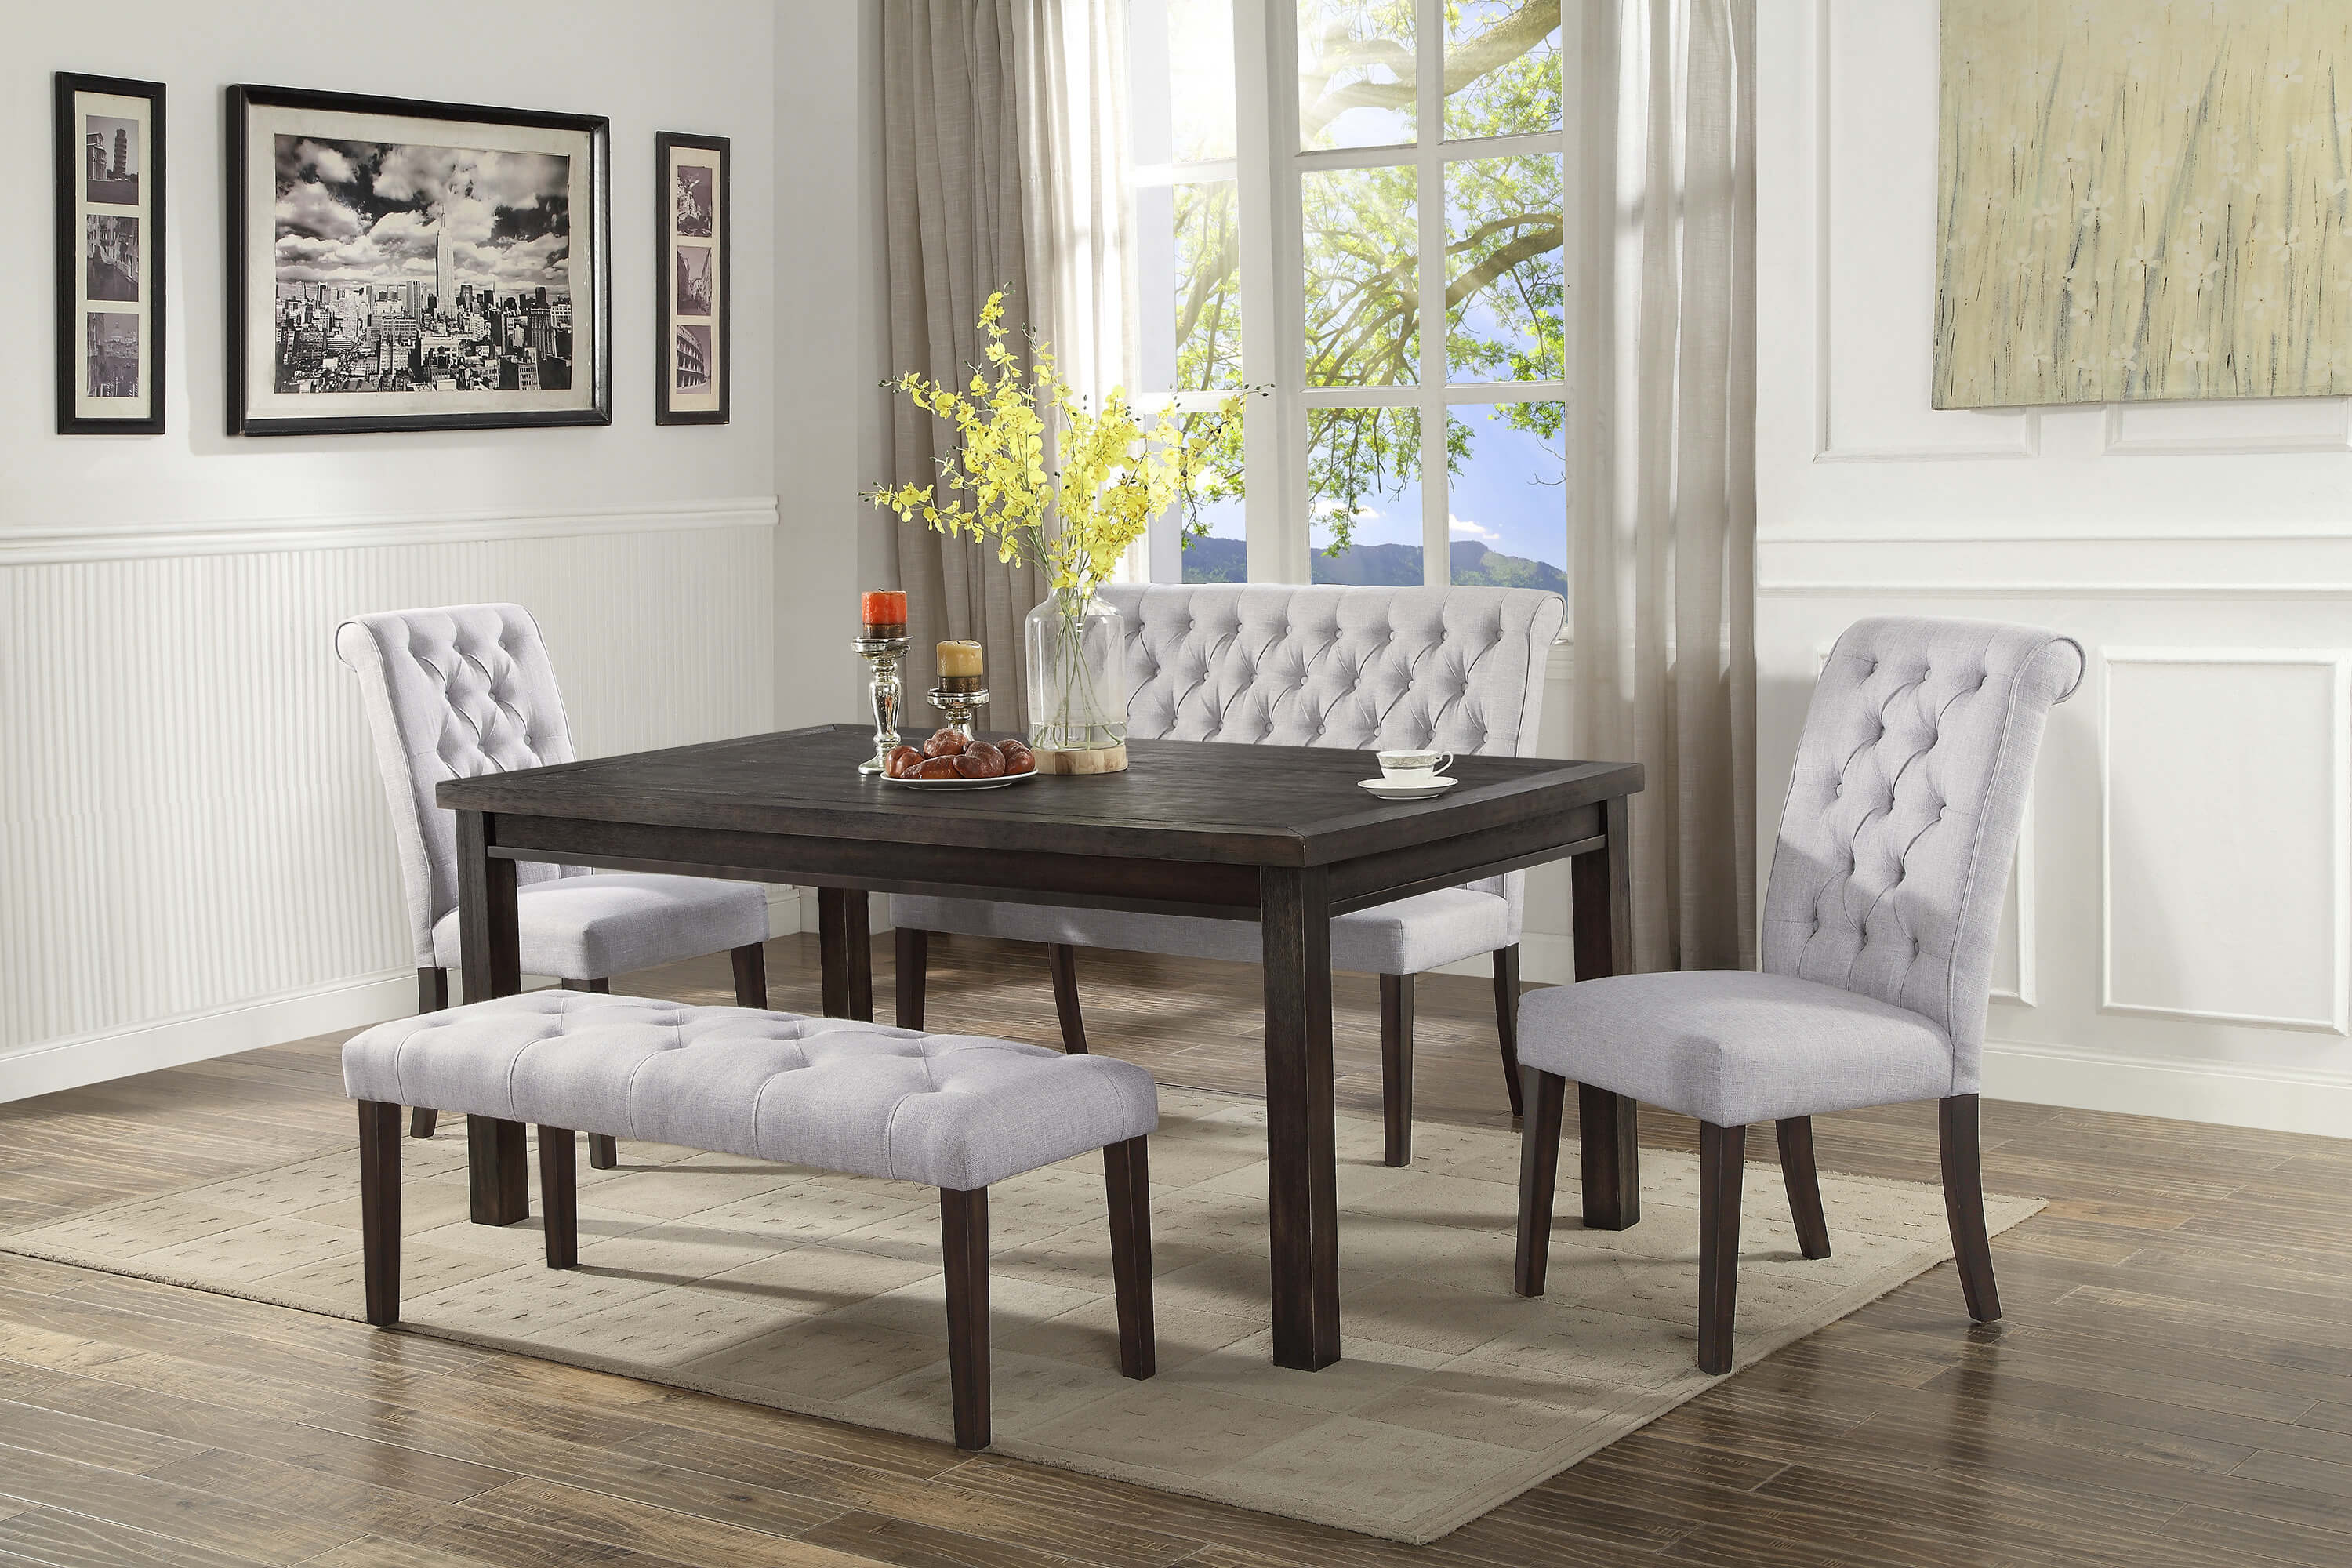 2022 5 pc Palmer Dining Set with Bench